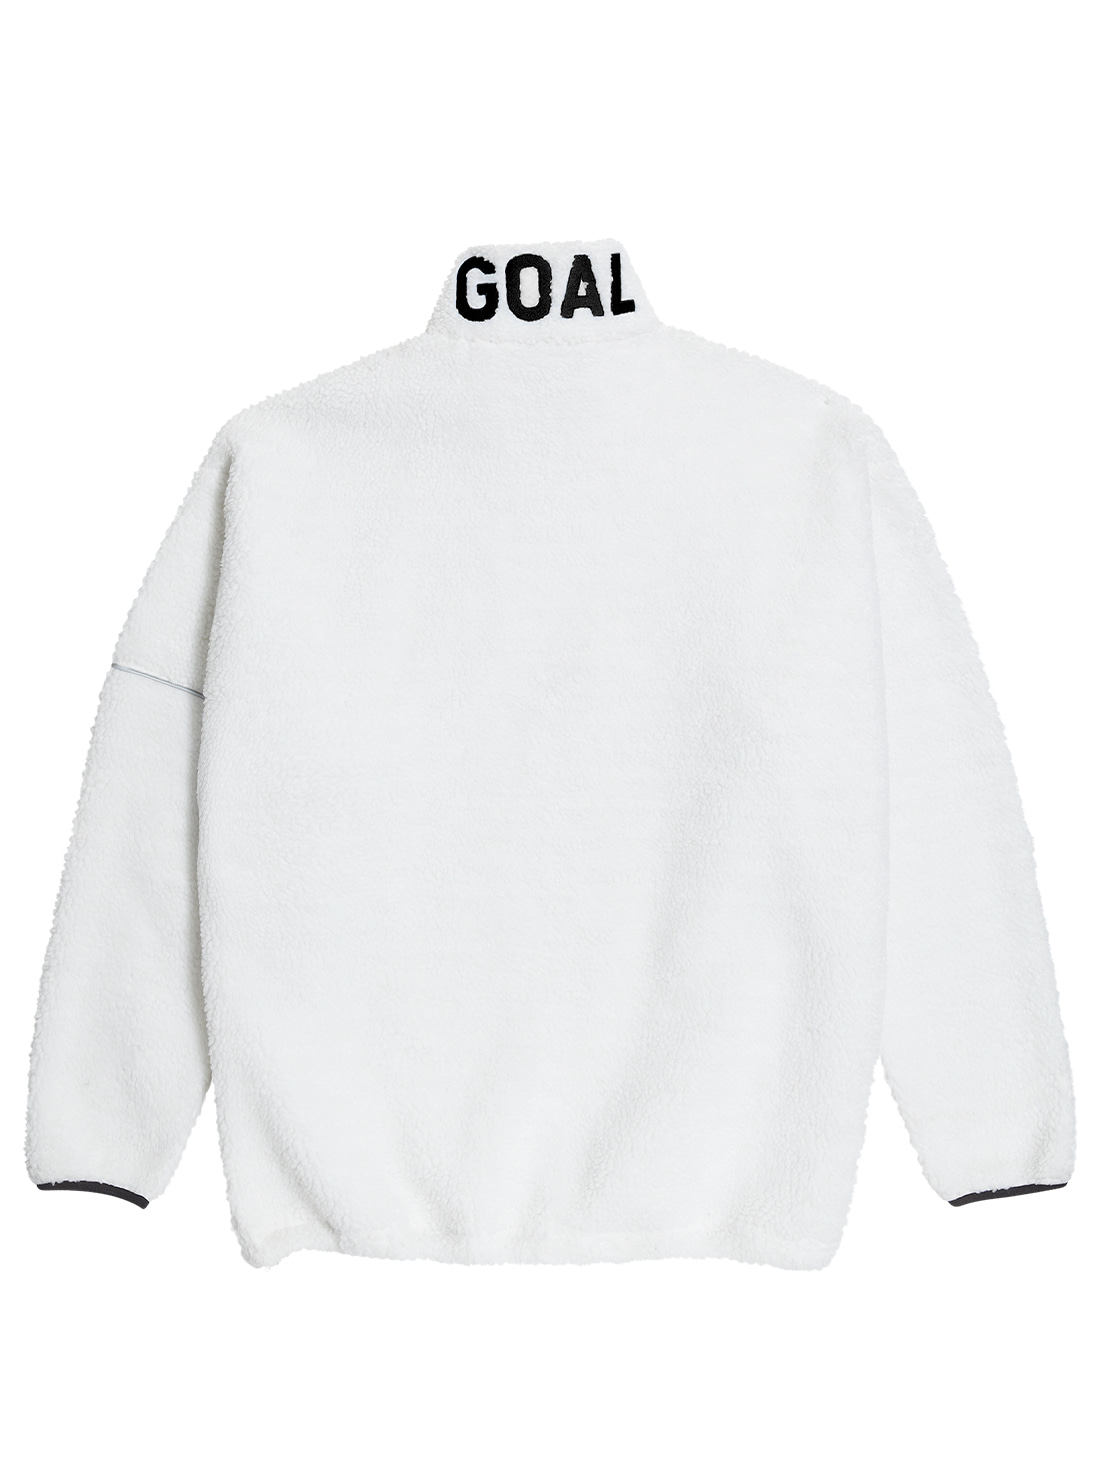 GOALSTUDIO (Sold Out) FLEECE ZIP UP PULLOVER - WHITE